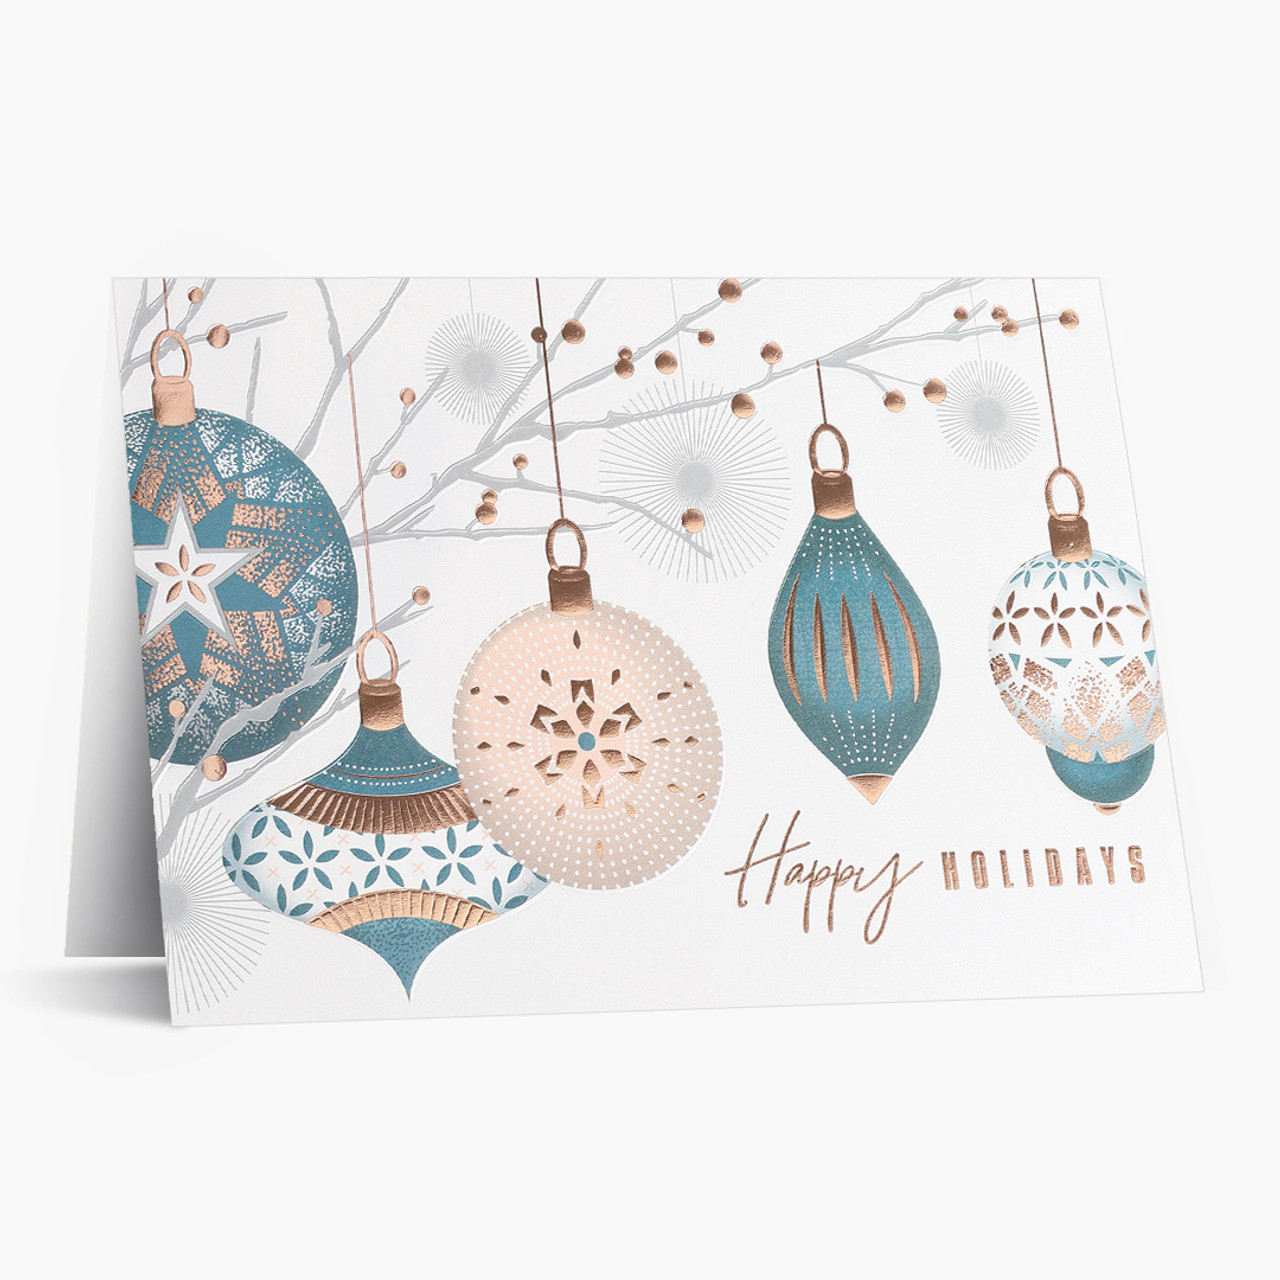 Copper and White Holiday Christmas Card